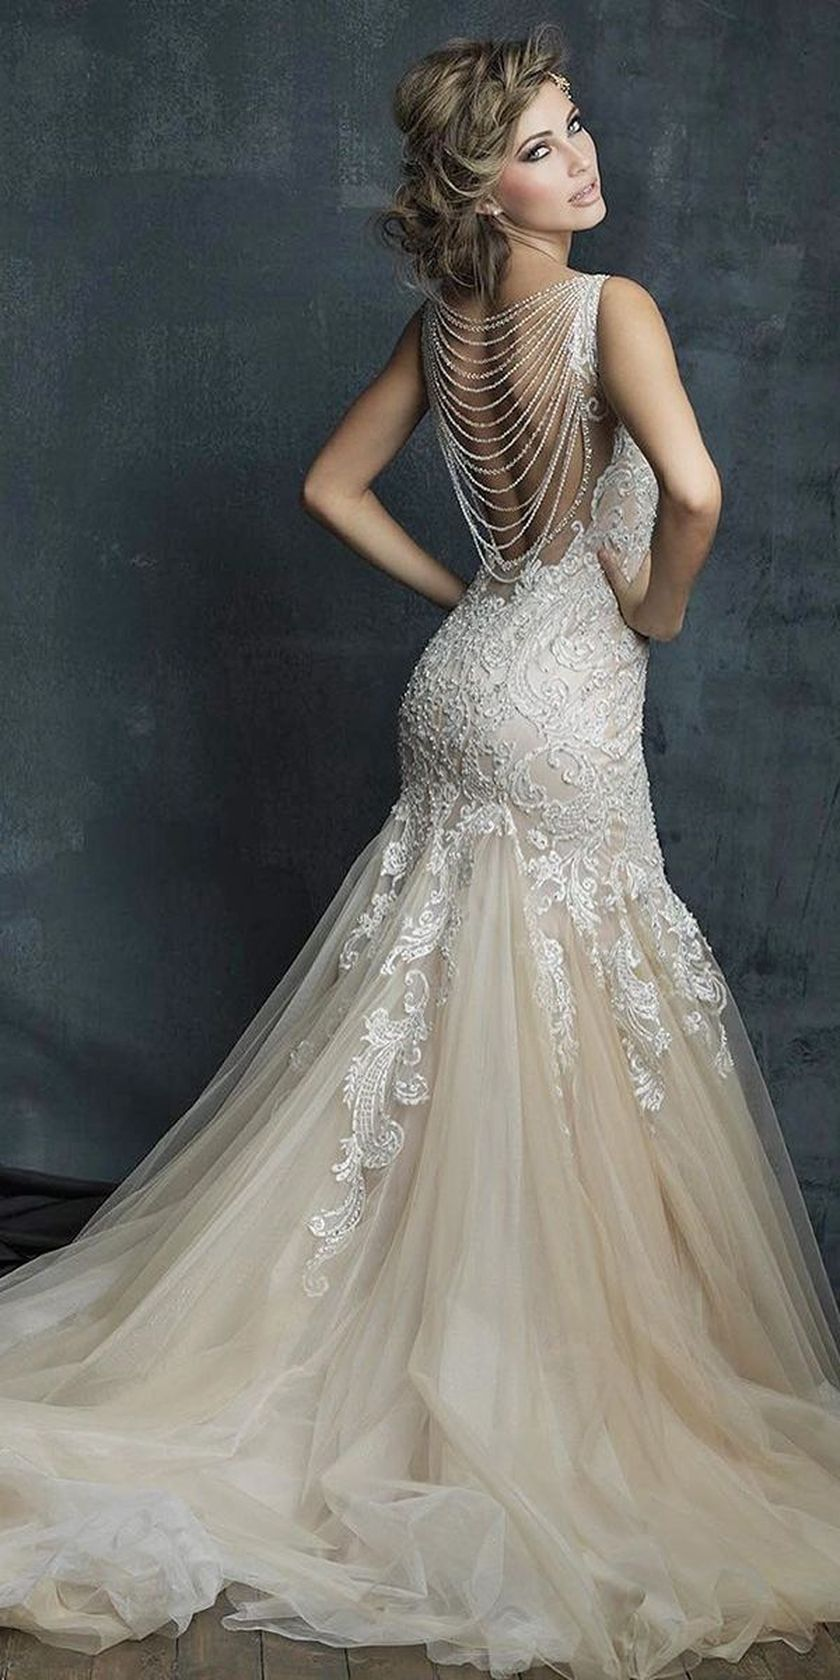 Pin by erica barrios on wedding dresses in pinterest